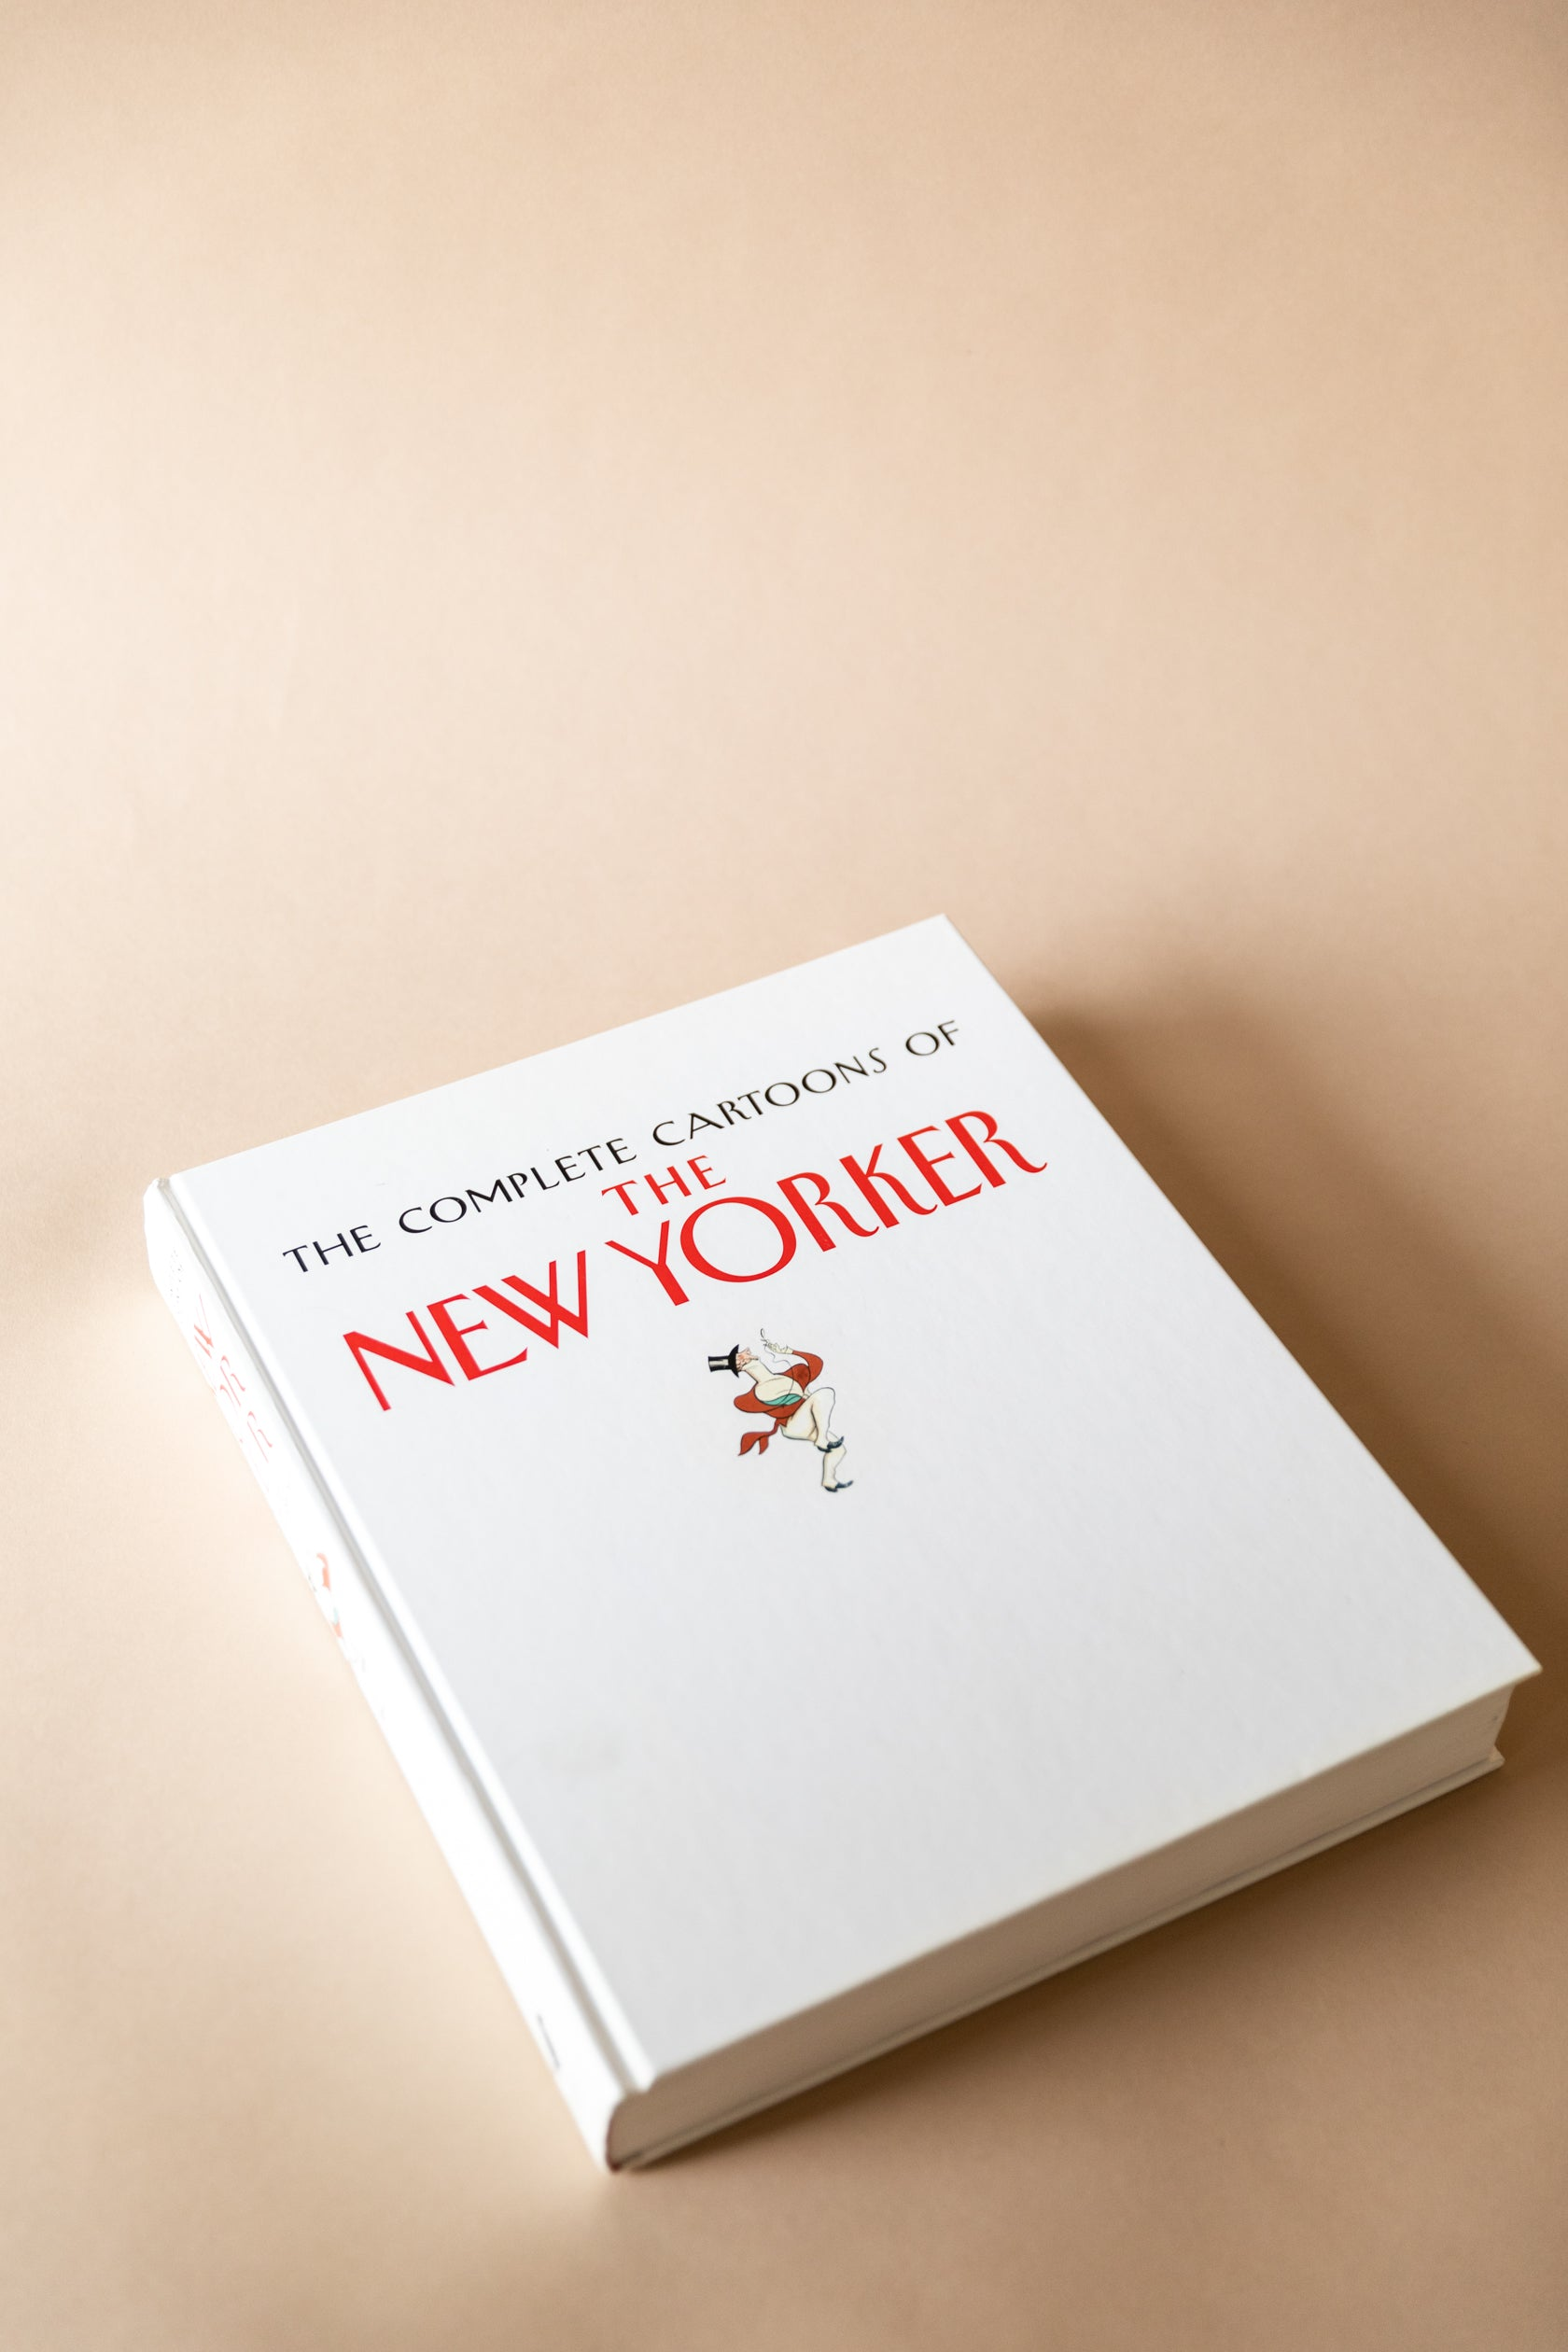 The Complete Cartoons of The New Yorker